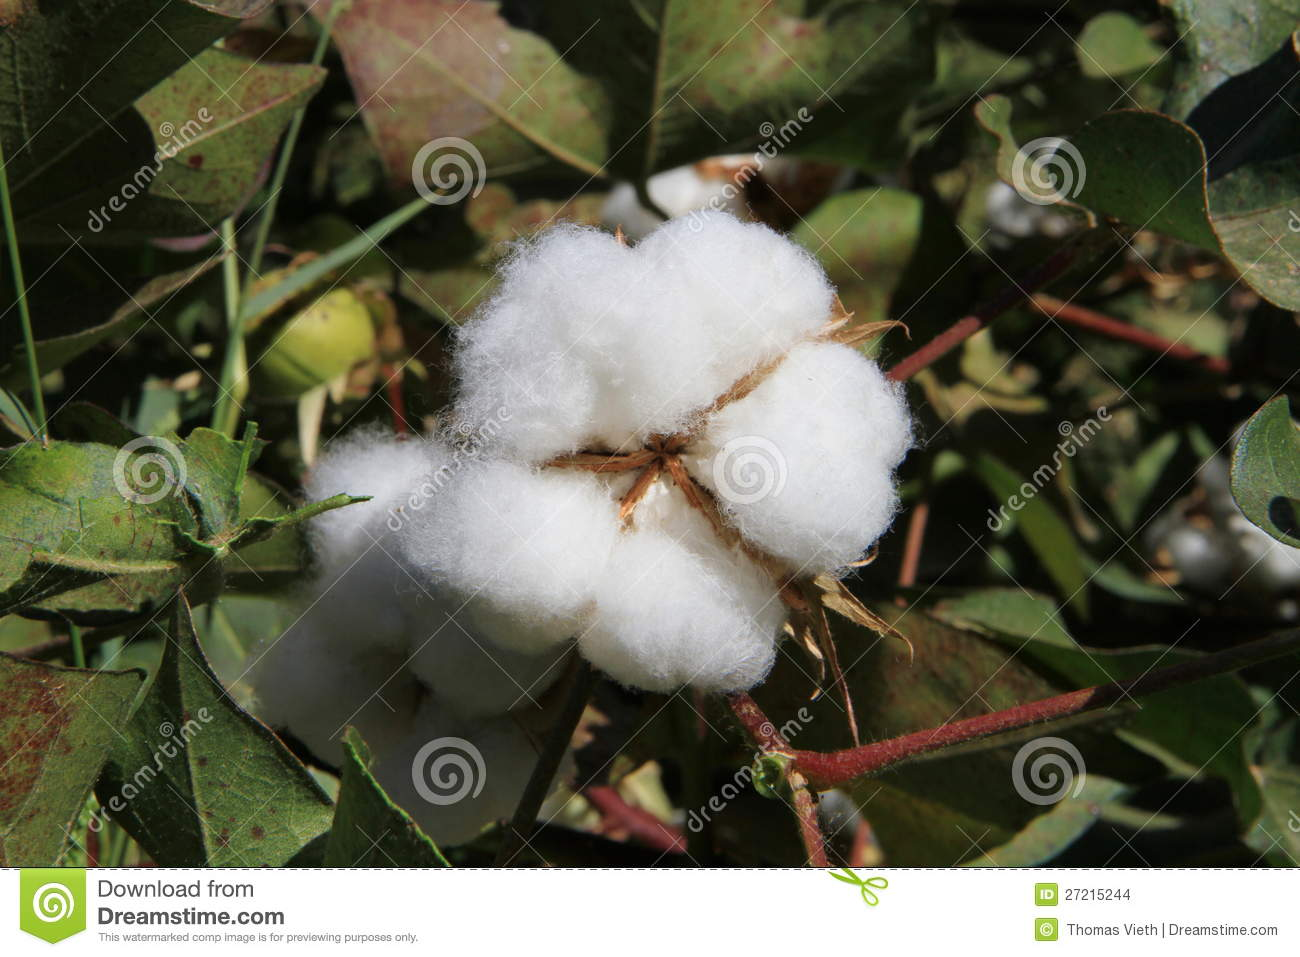 cotton plant men Of the men's clothing made from cotton fibers, 85 percent is made from 100-percent cotton cotton is used to make men's cotton suits, cotton dress shirts, underwear, and men's casual clothing, including jeans and sweatshirts.